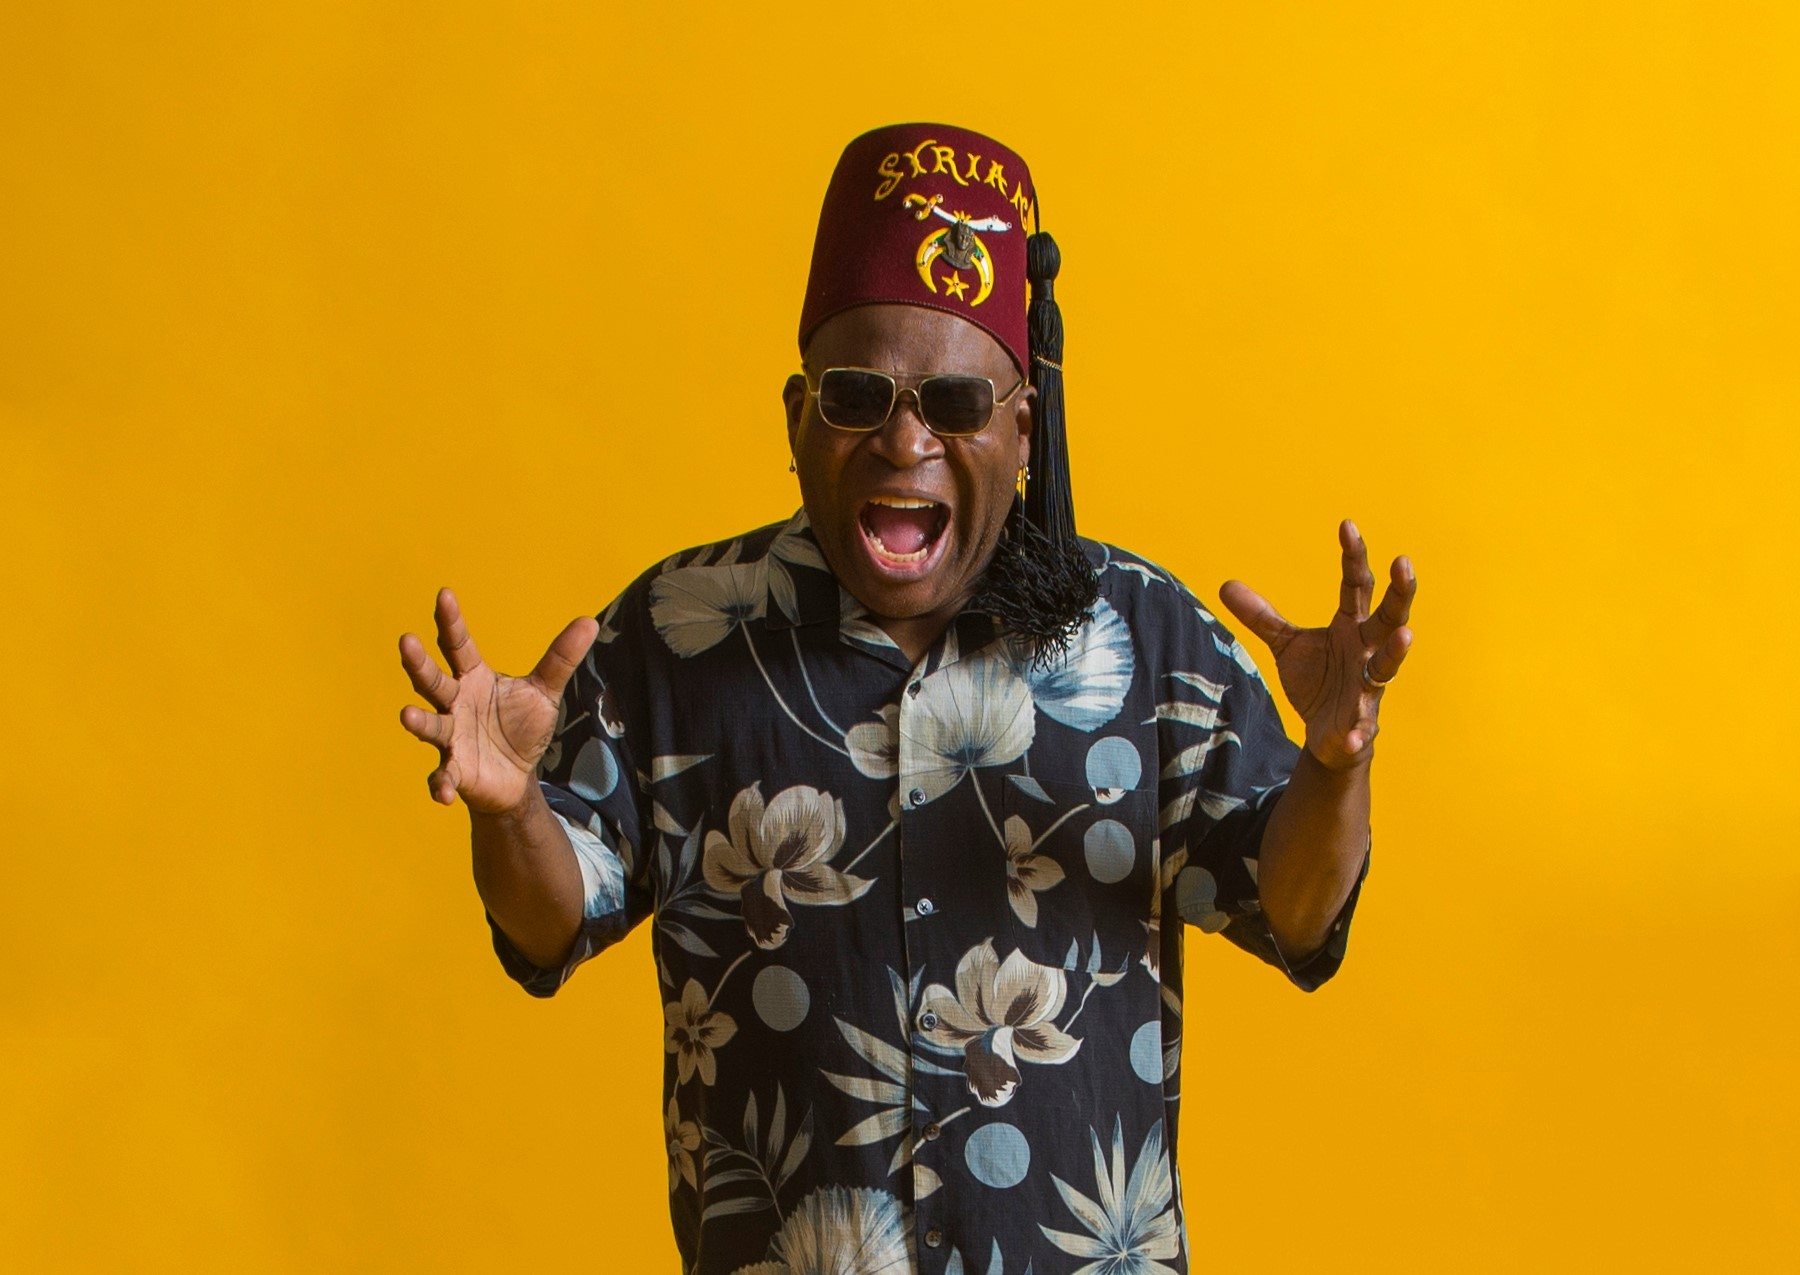 Big voice - Barrence Whitfield will be at the Railway Hotel in May